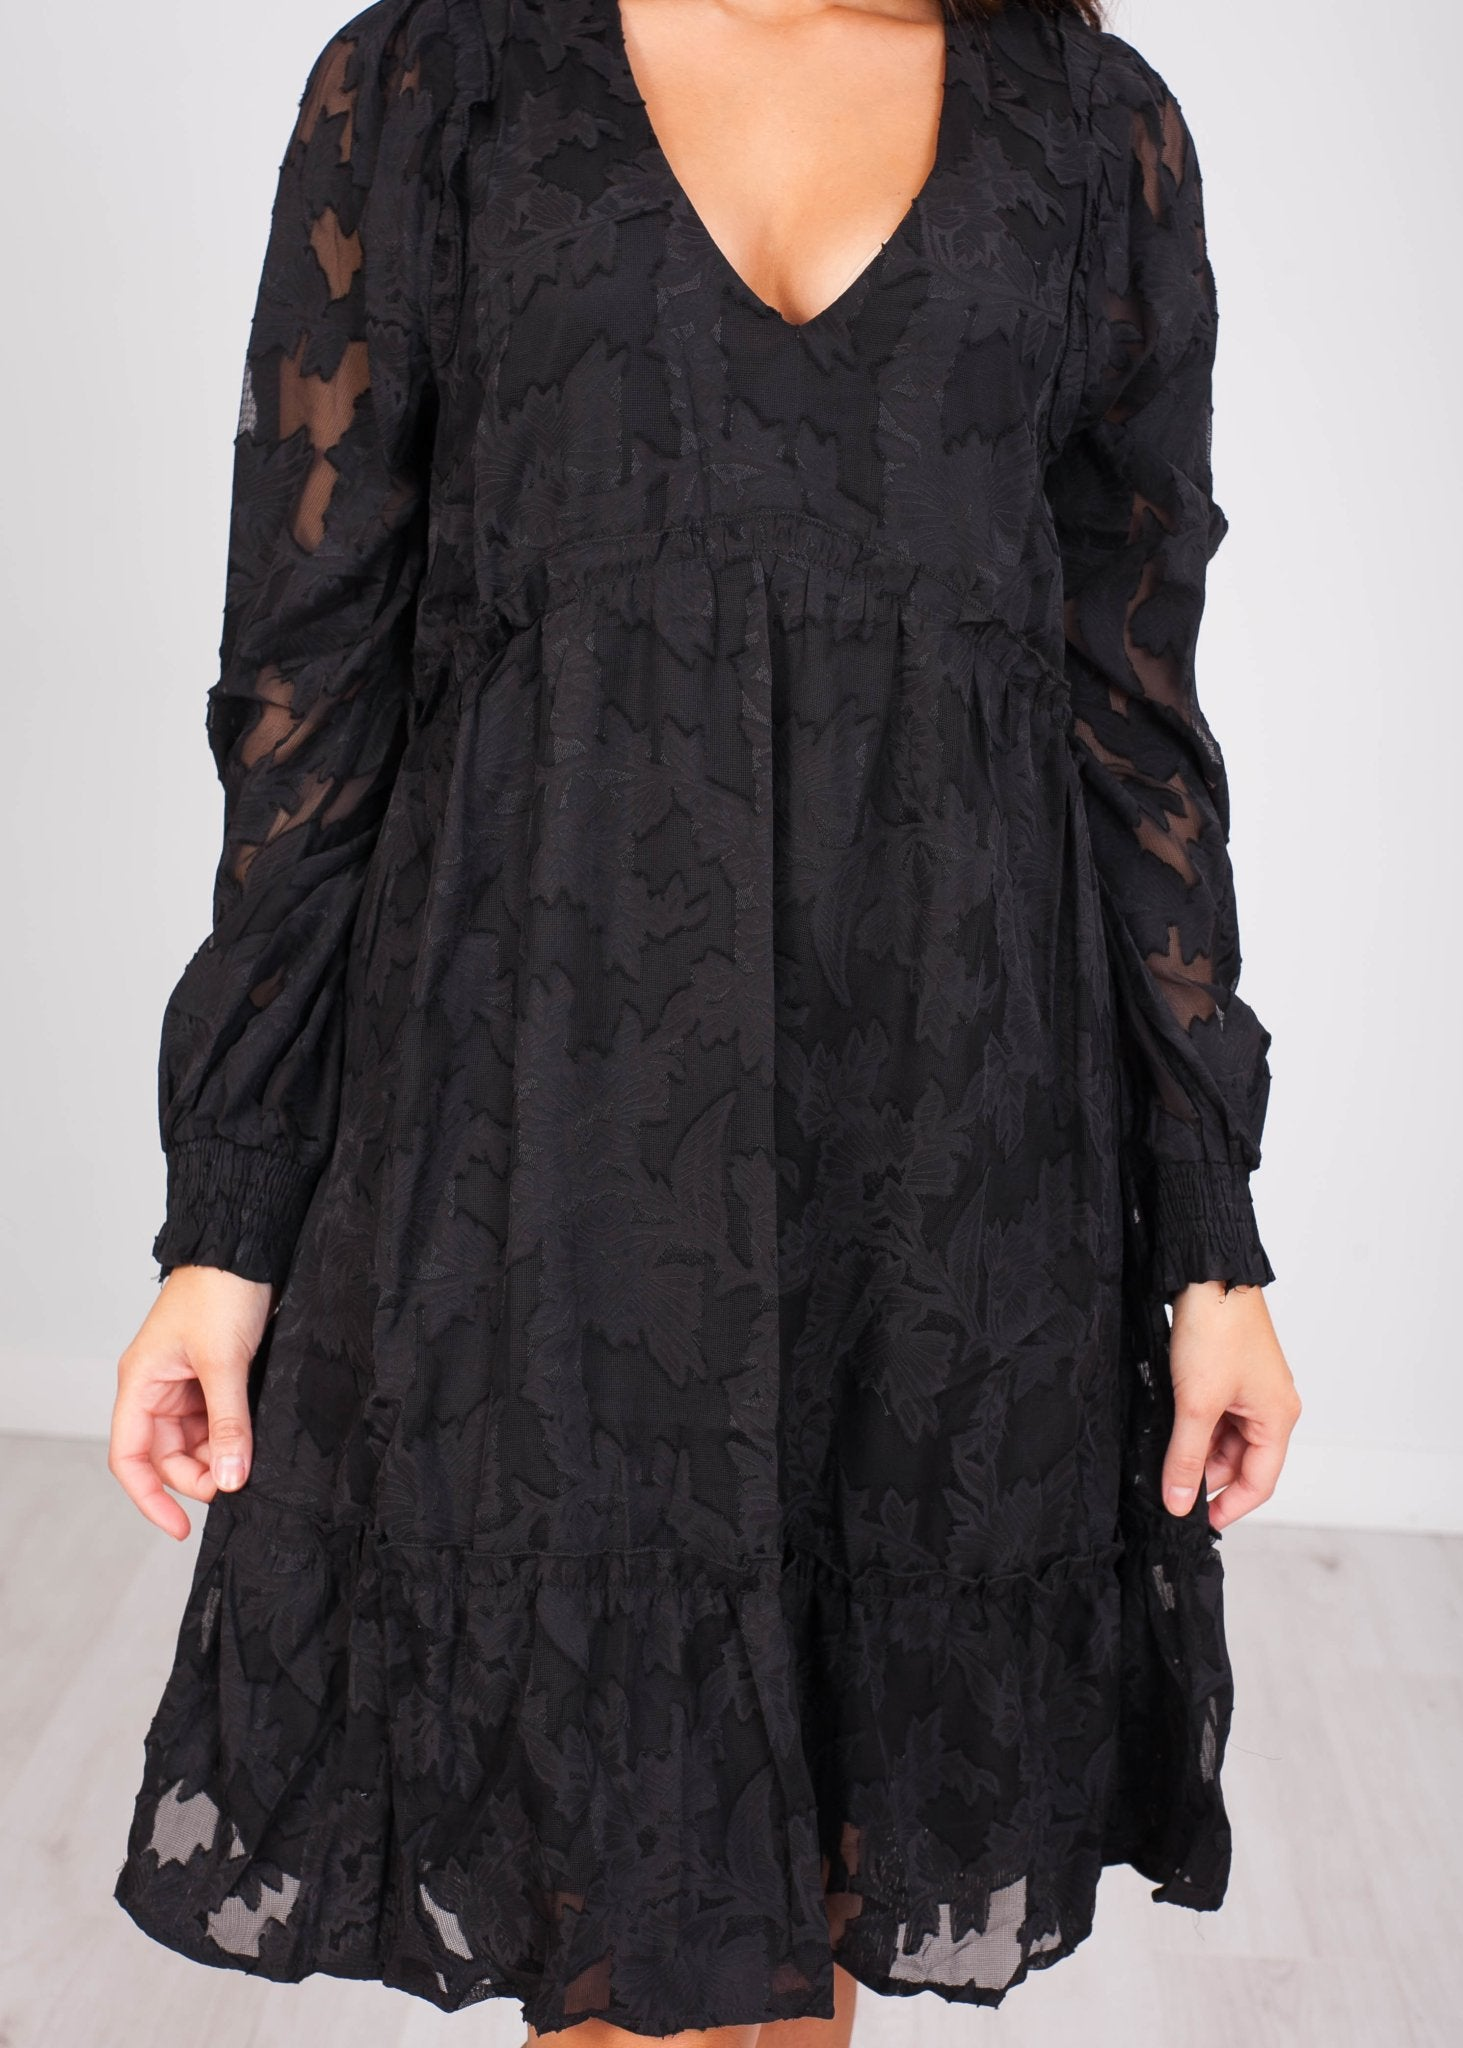 Cherie Black Lace Dress - The Walk in Wardrobe